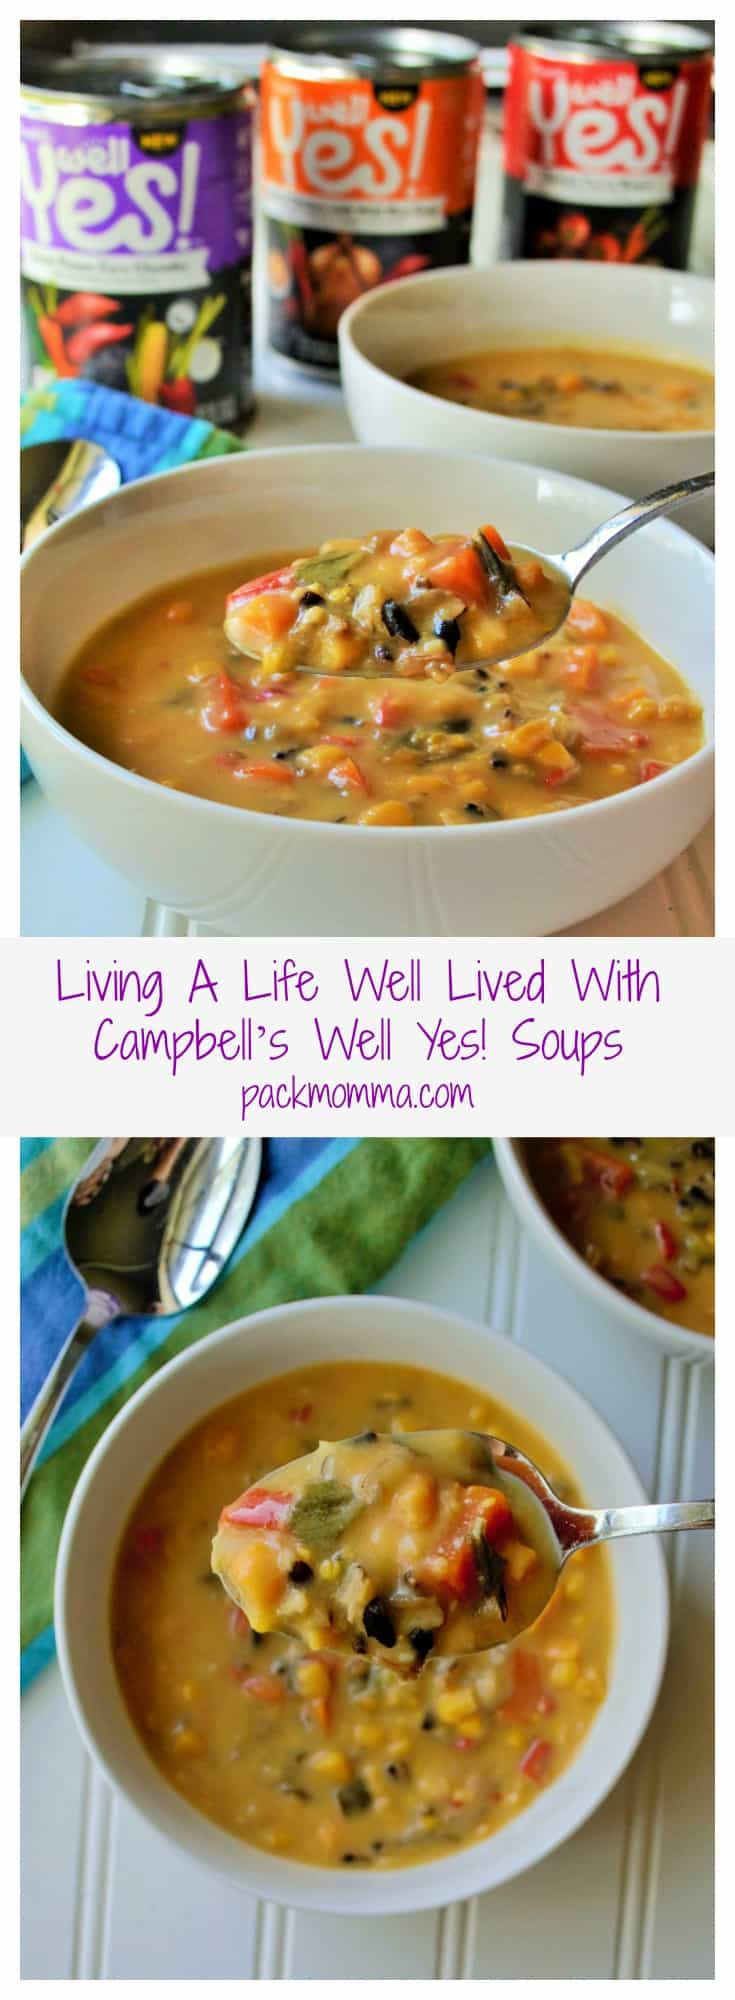 Living A Life Well Lived with Campbell's Well Yes! Soups | Pack Momma | https://www.packmomma.com